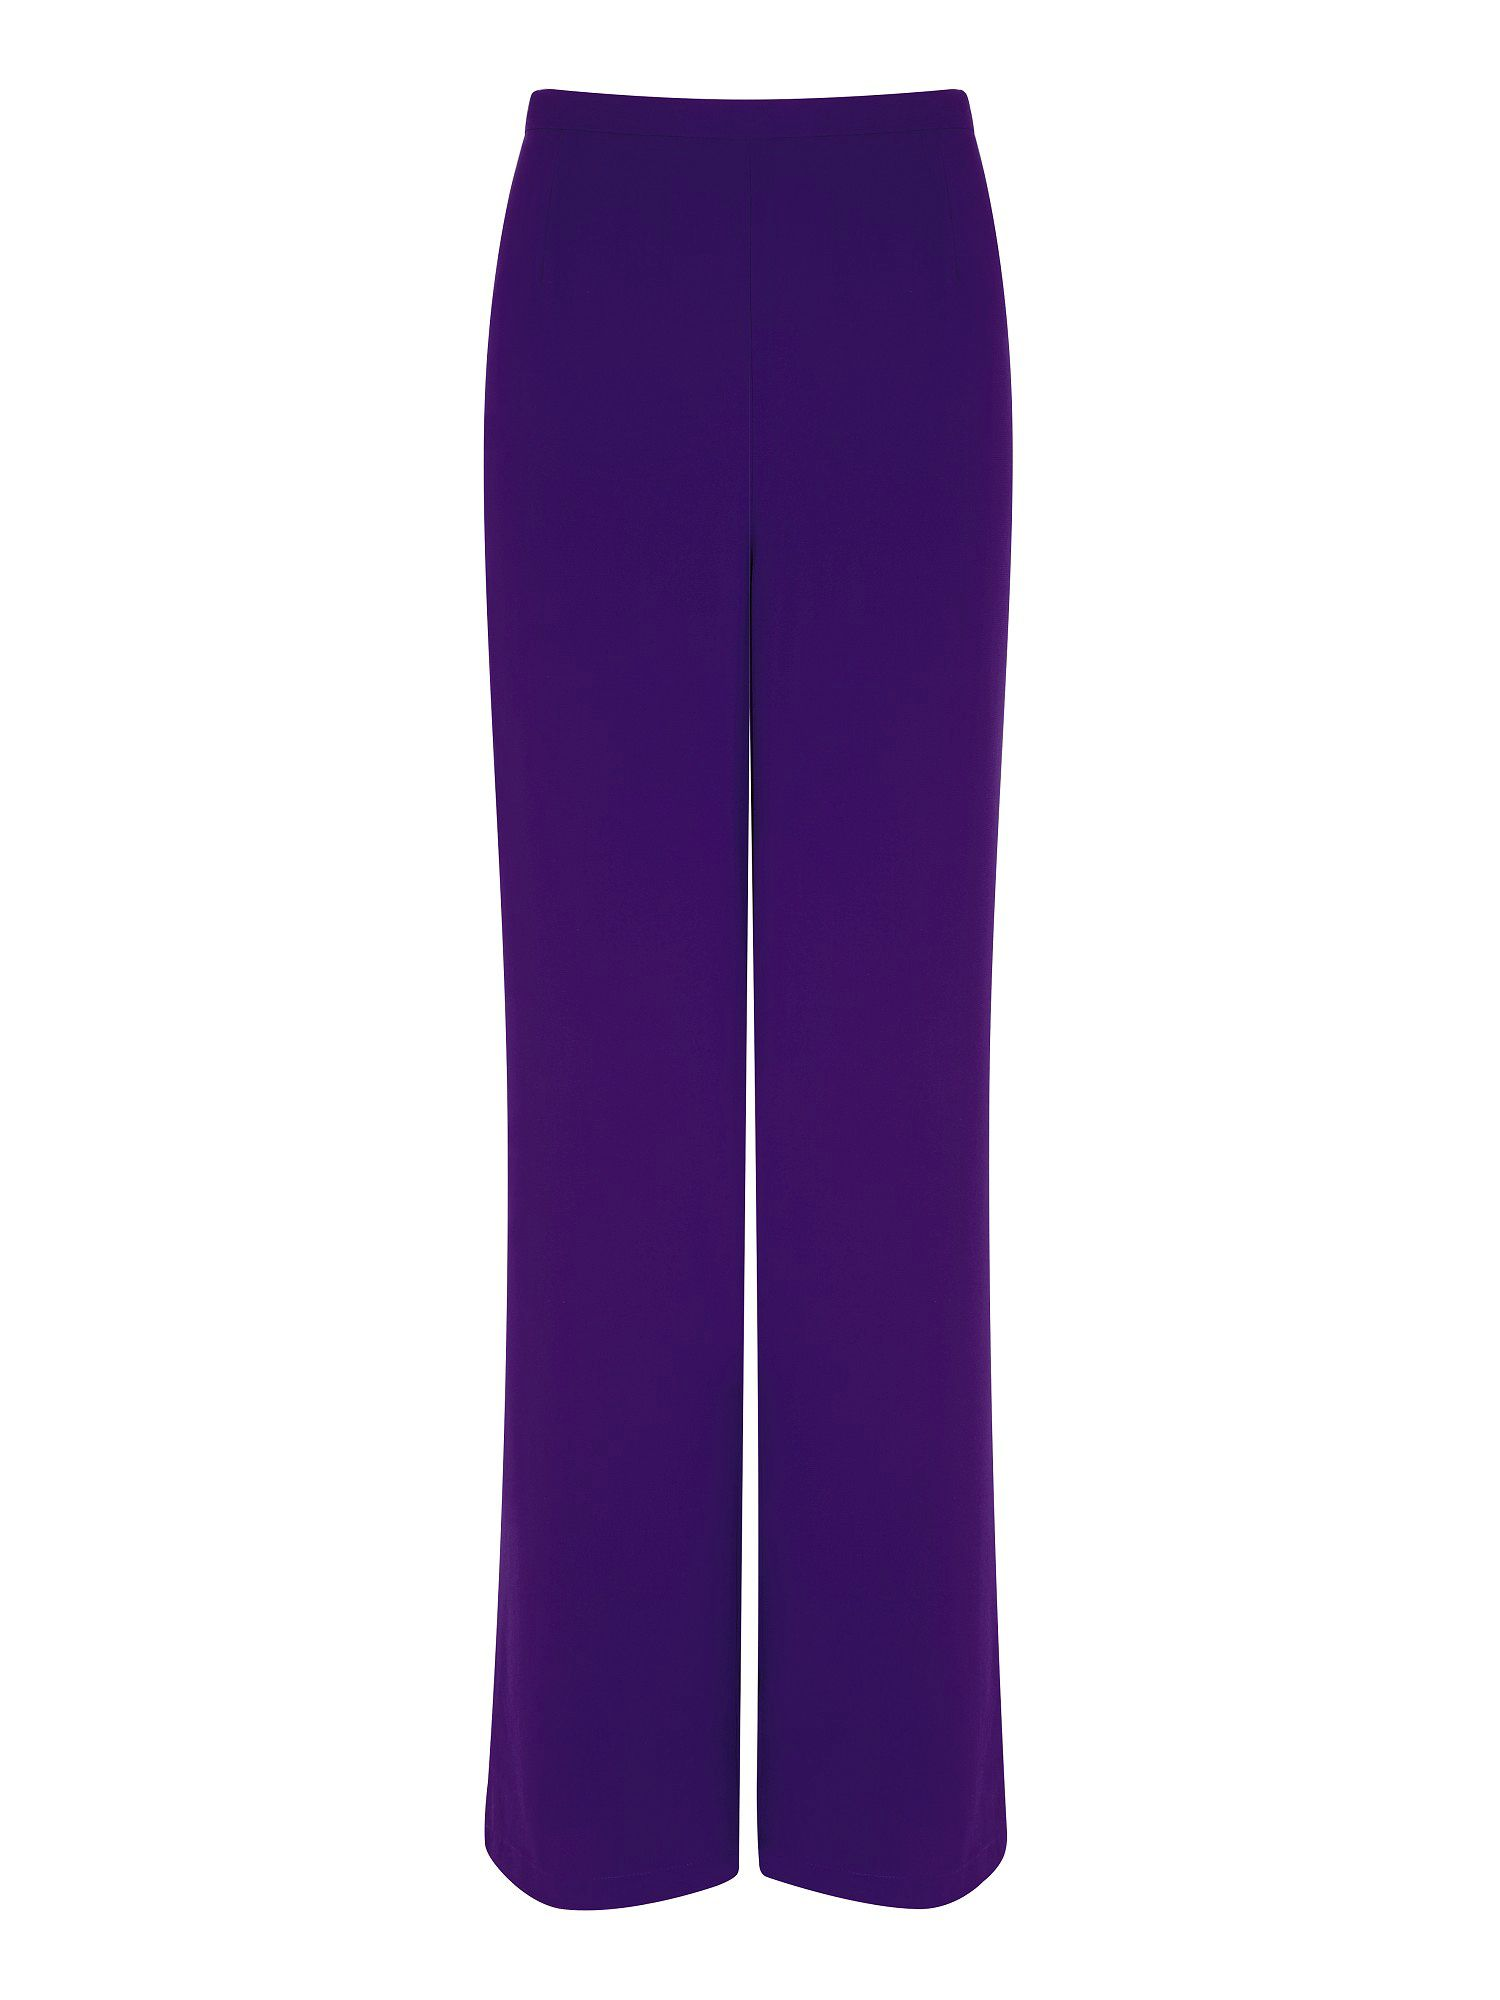 Blackcurrant chiffon trousers